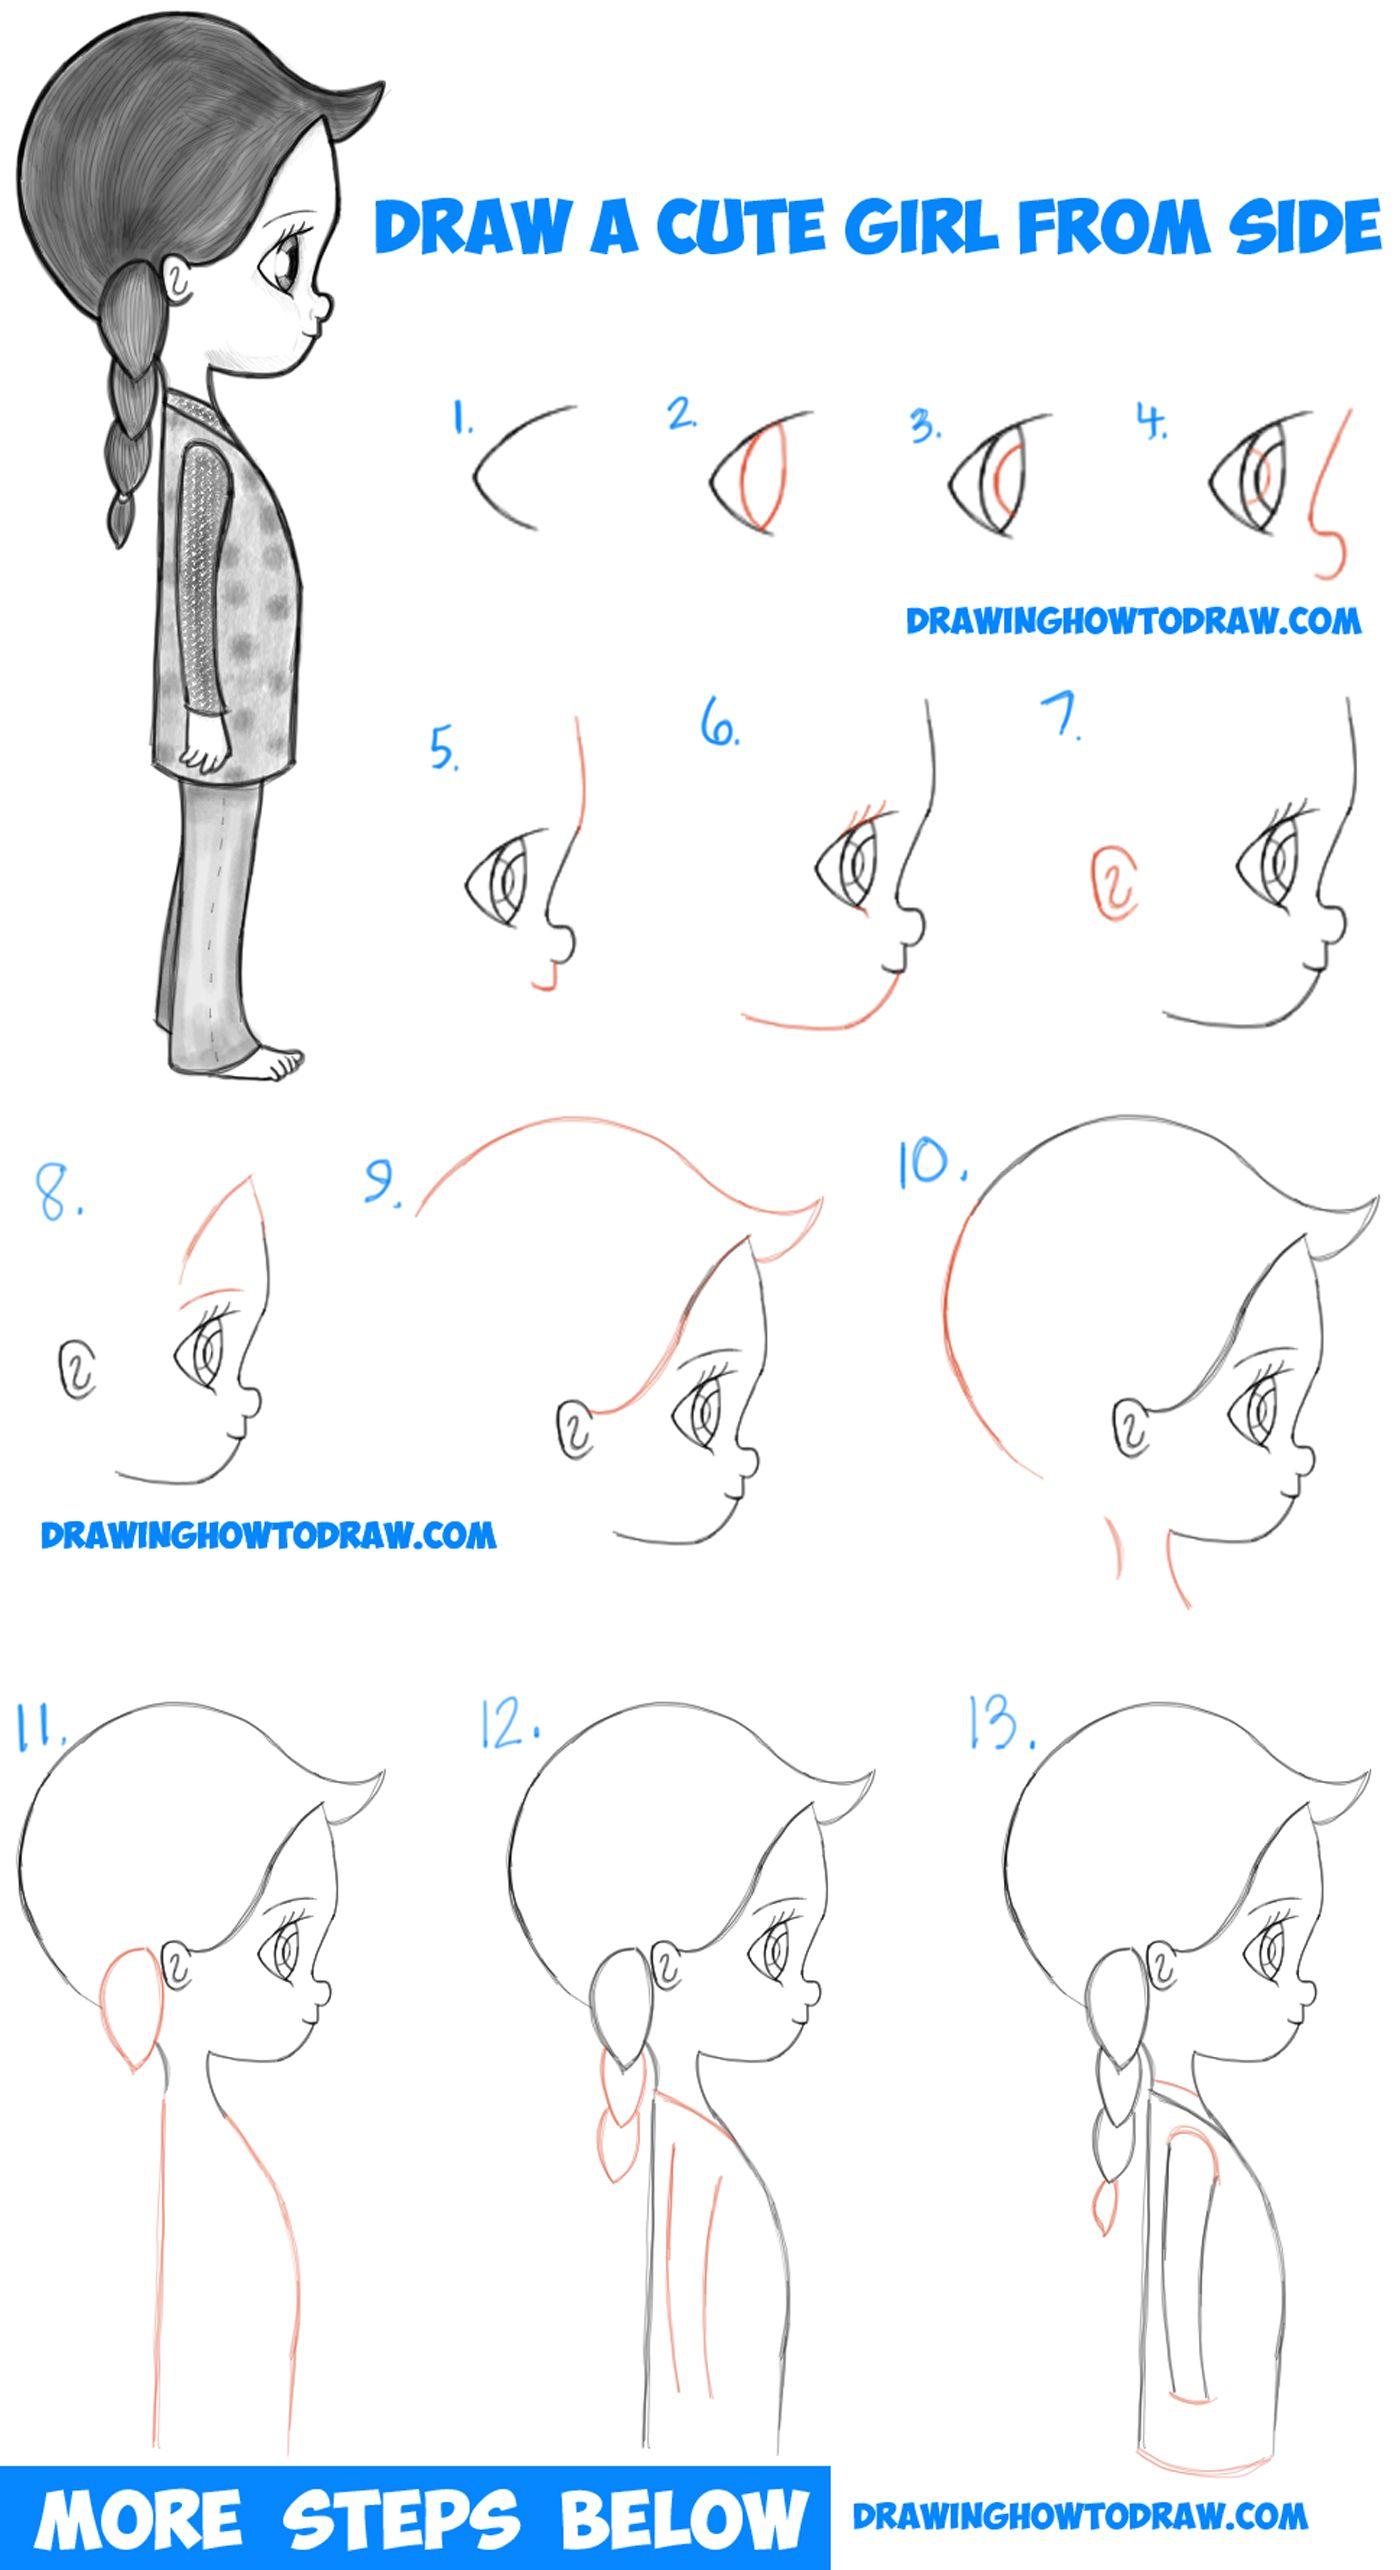 How To Draw A Cute Chibi Manga Anime Girl From The Side View